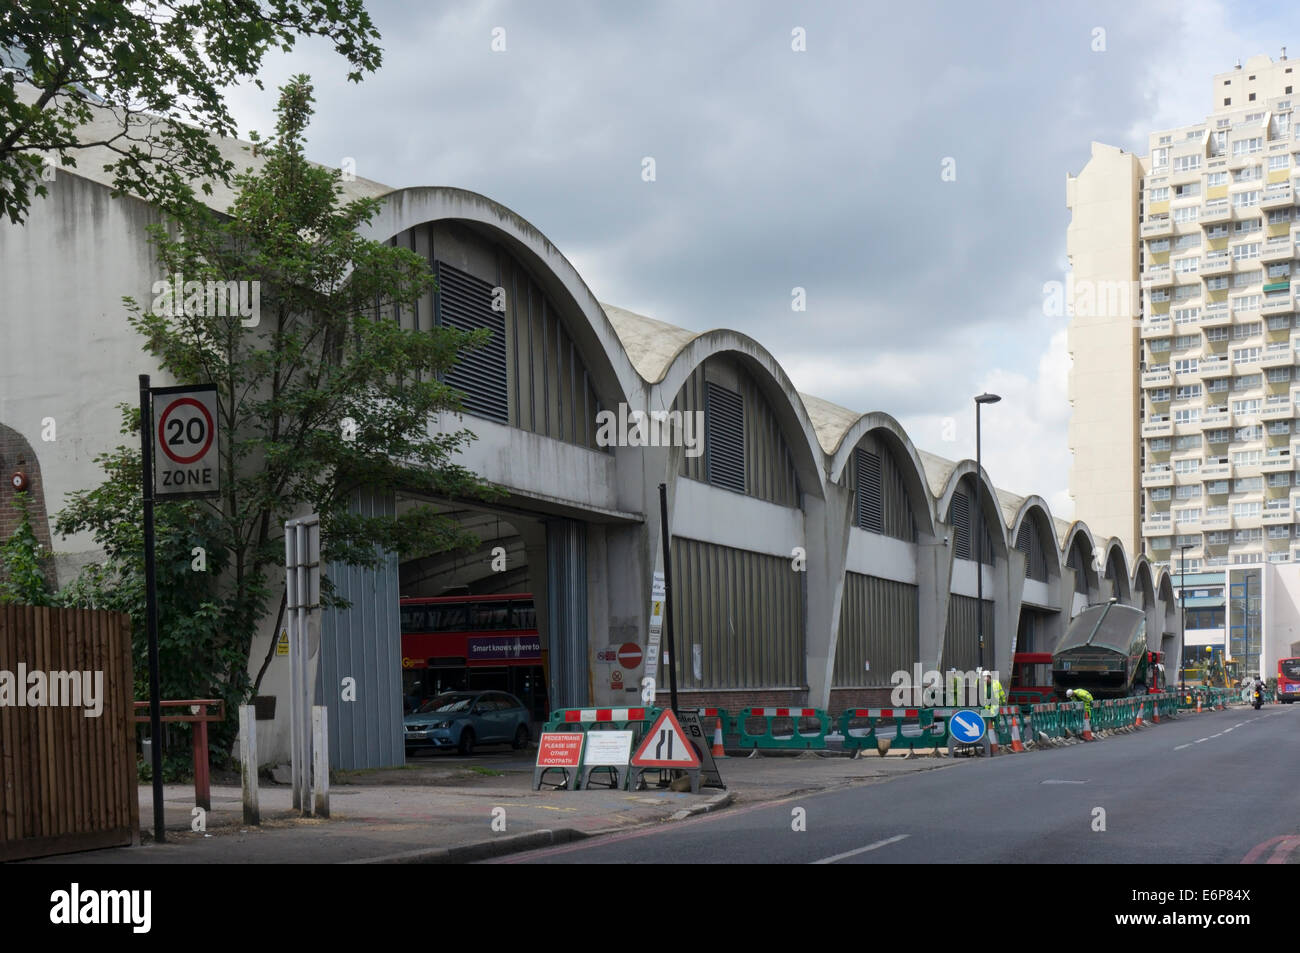 The Grade II* listed, reinforced concrete Stockwell bus garage. - Stock Image